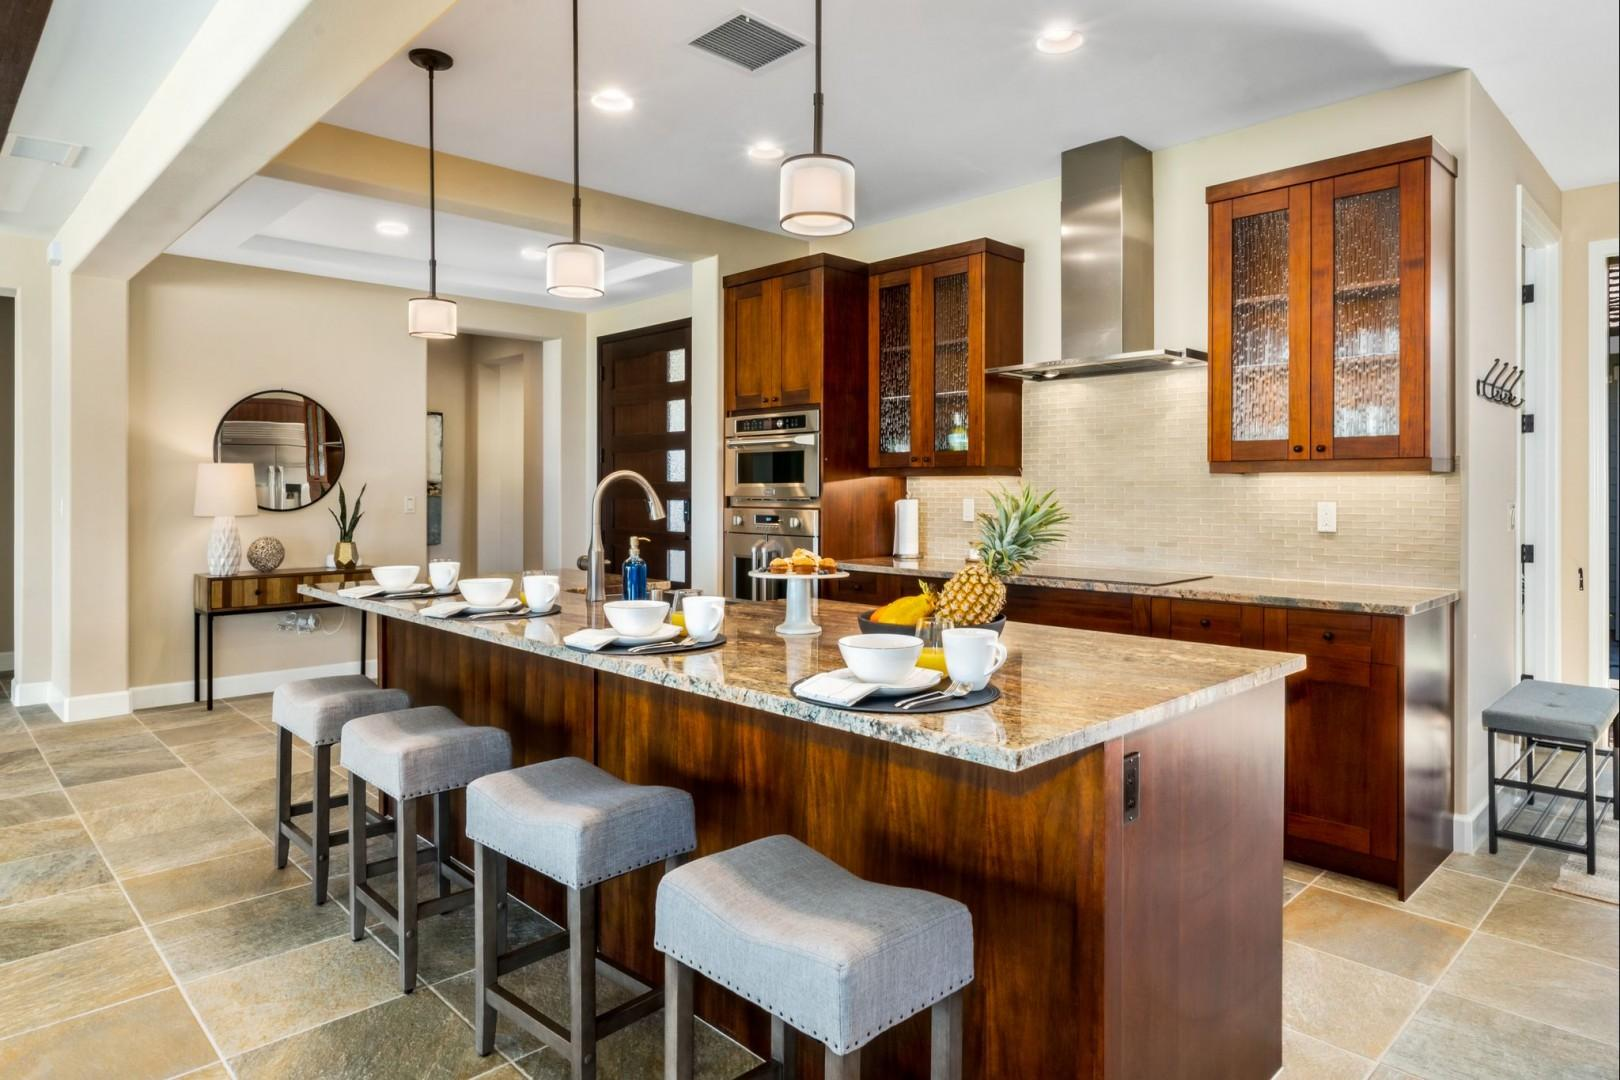 Enjoy breakfast and the expansive kitchen island